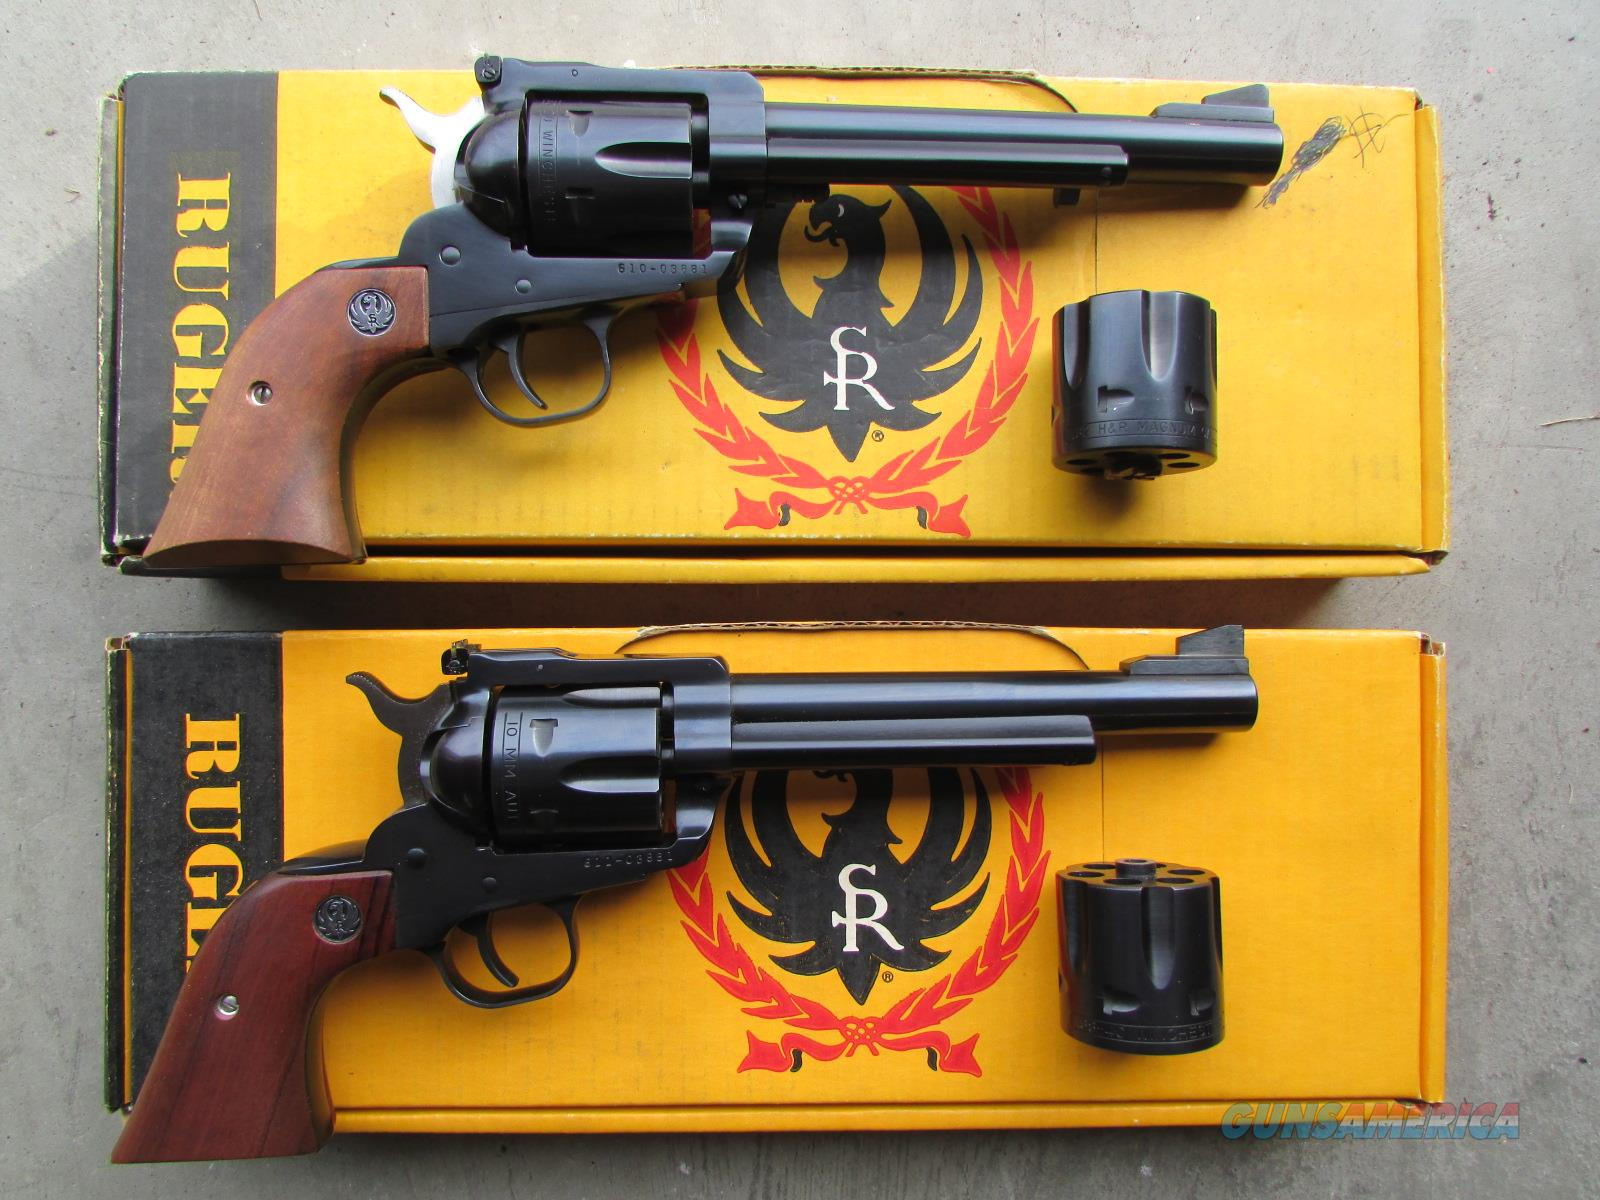 1989-1990 Ruger Blackhawk Convertible Buckeye Matched Set .32-20, .32 H&R, 38-40, 10mm AUTO  Guns > Pistols > Ruger Single Action Revolvers > Blackhawk Type